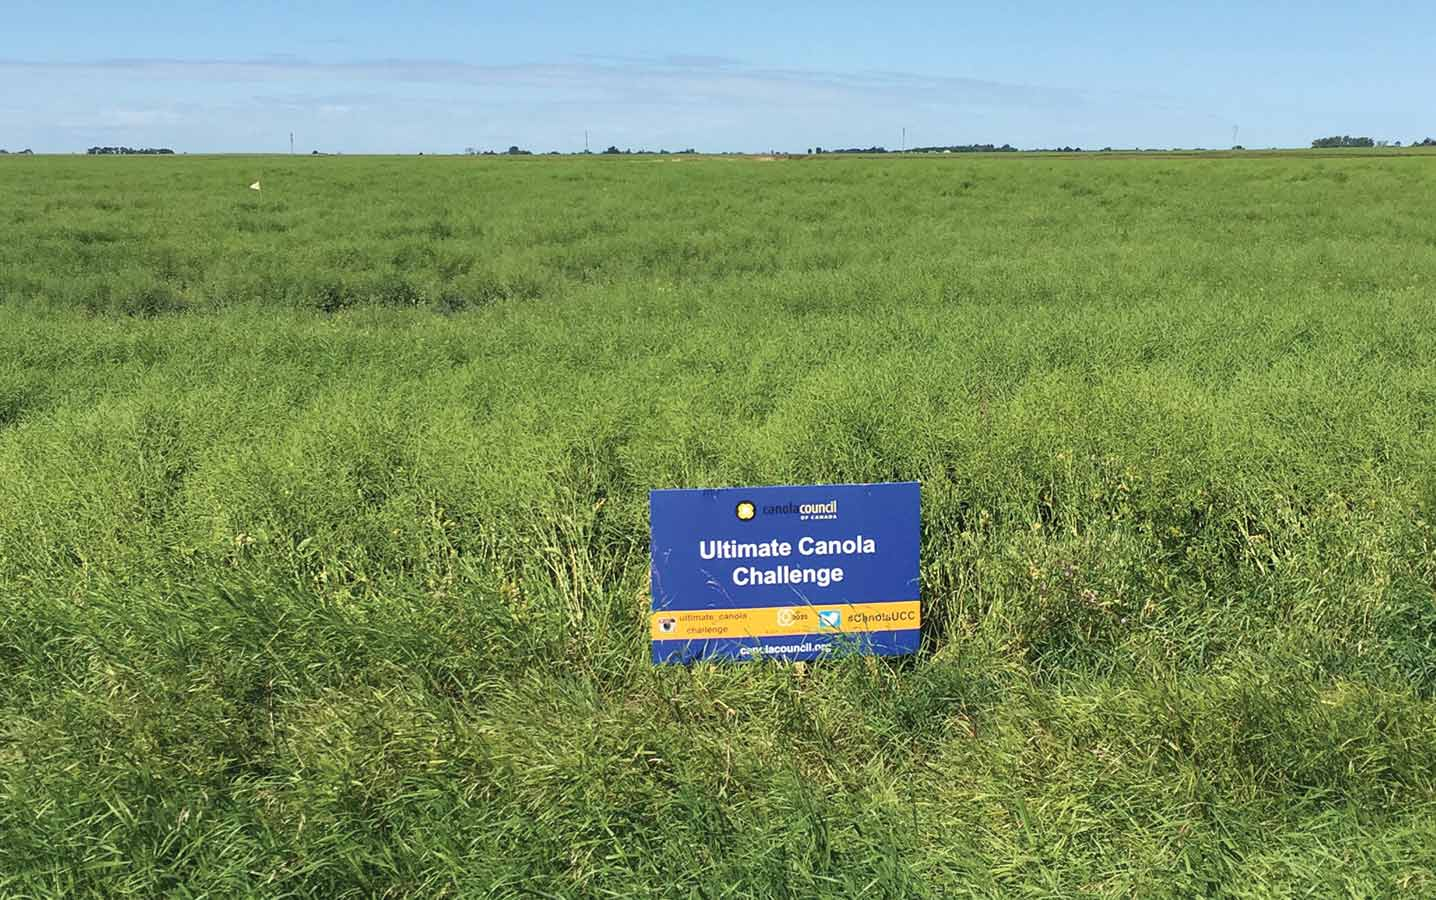 A large green field with a sign: Ultimate Canola Challenge